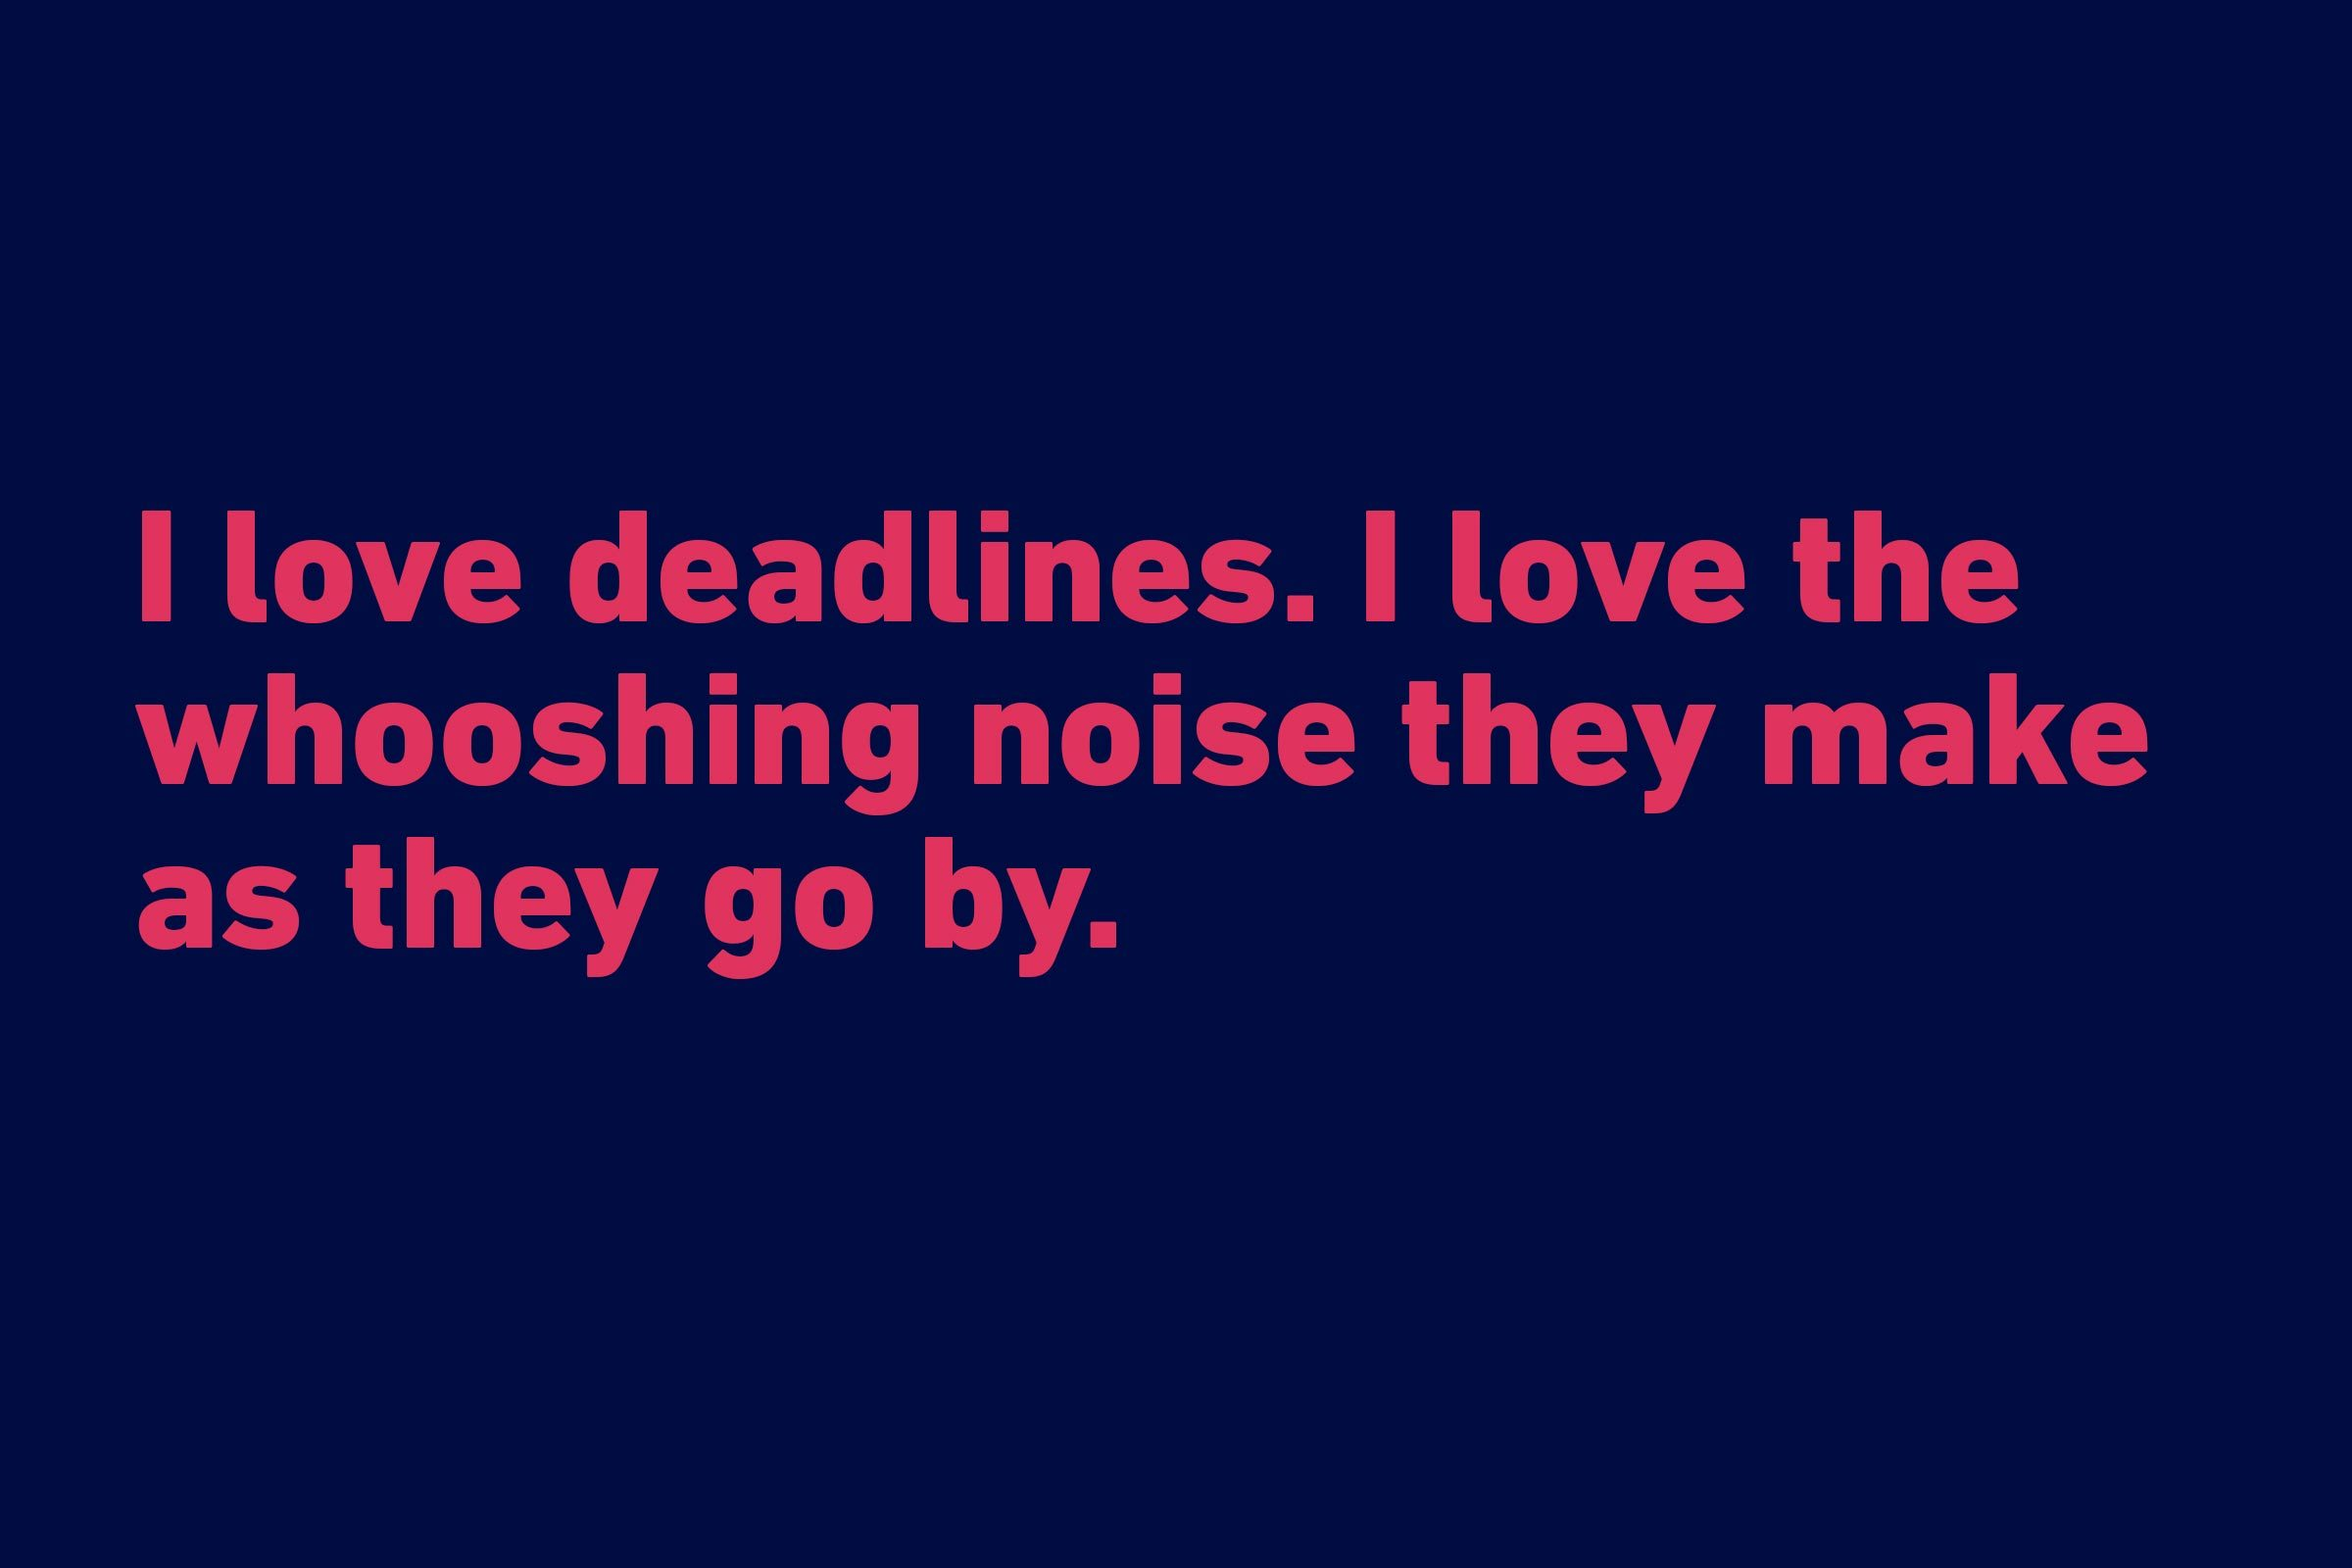 """I love deadlines. I love the whooshing noise they make as they go by."" —Douglas Adams"